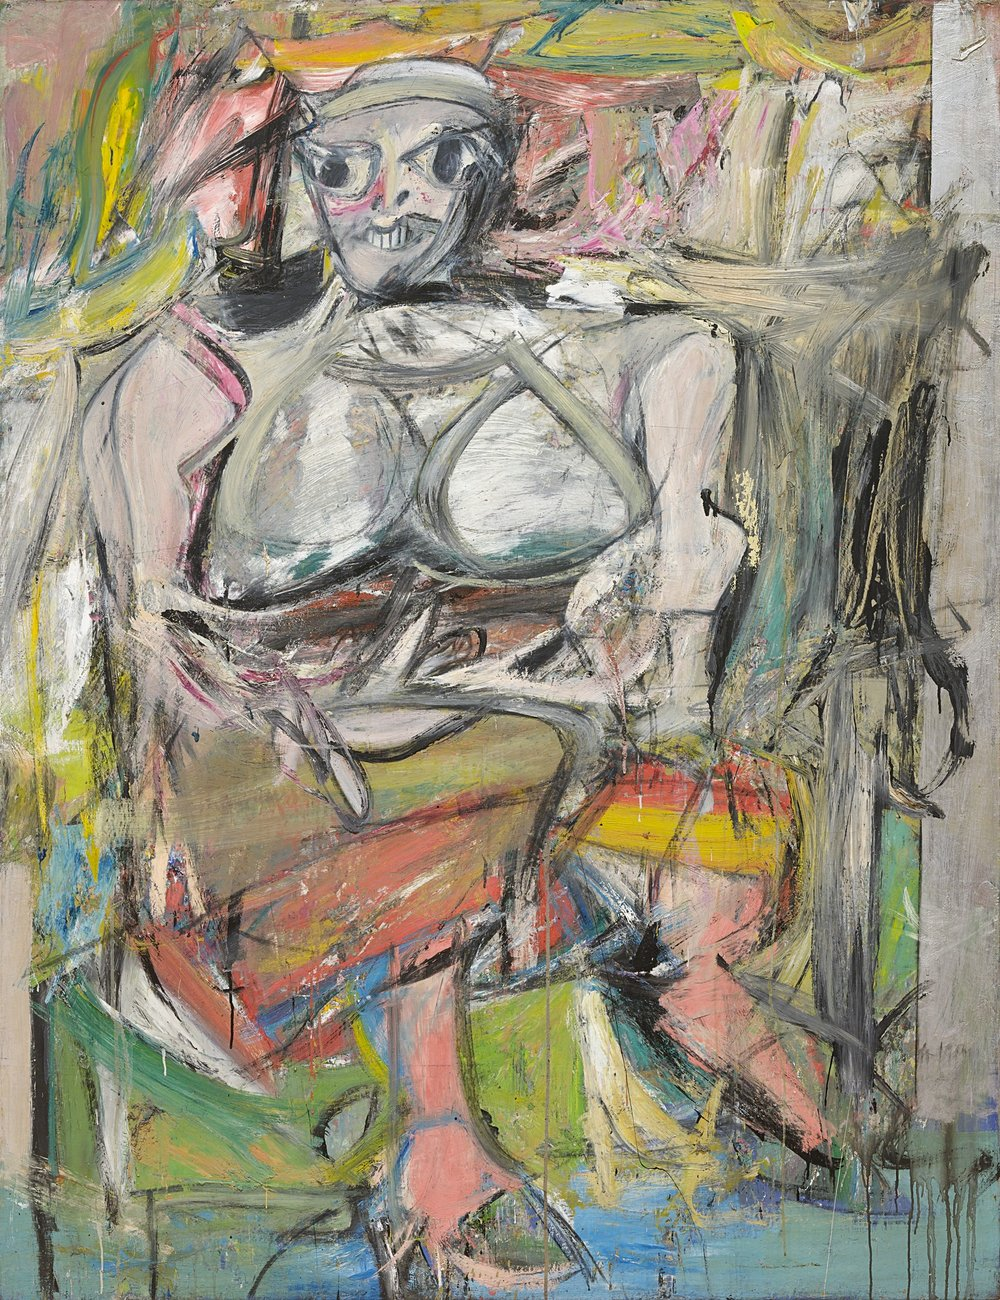 Willem de Kooning, Woman I, 1950-1952